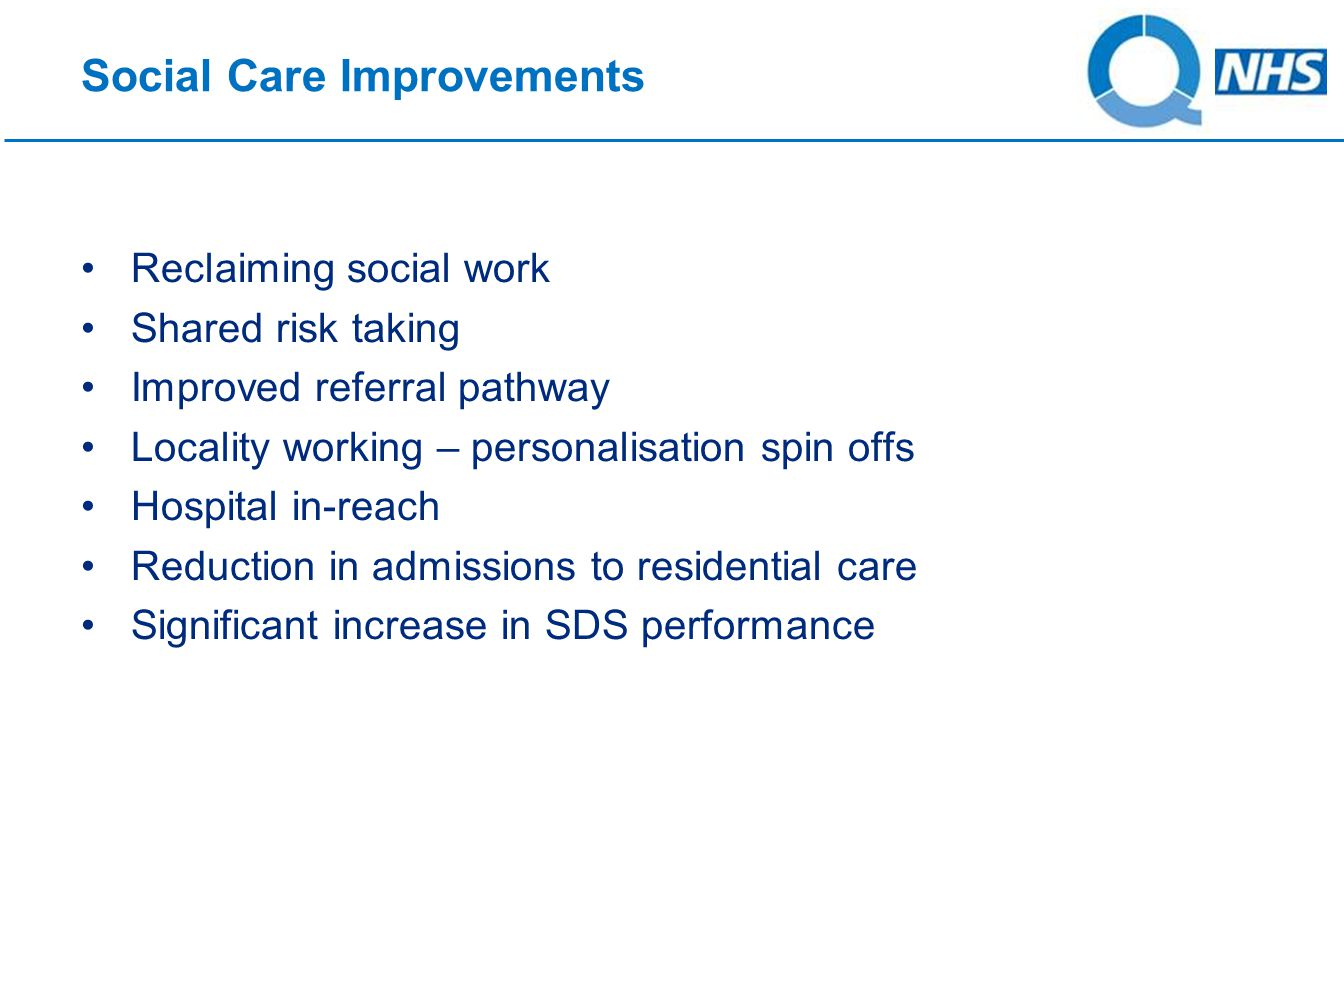 Social Care Improvements Reclaiming social work Shared risk taking Improved referral pathway Locality working – personalisation spin offs Hospital in-reach Reduction in admissions to residential care Significant increase in SDS performance